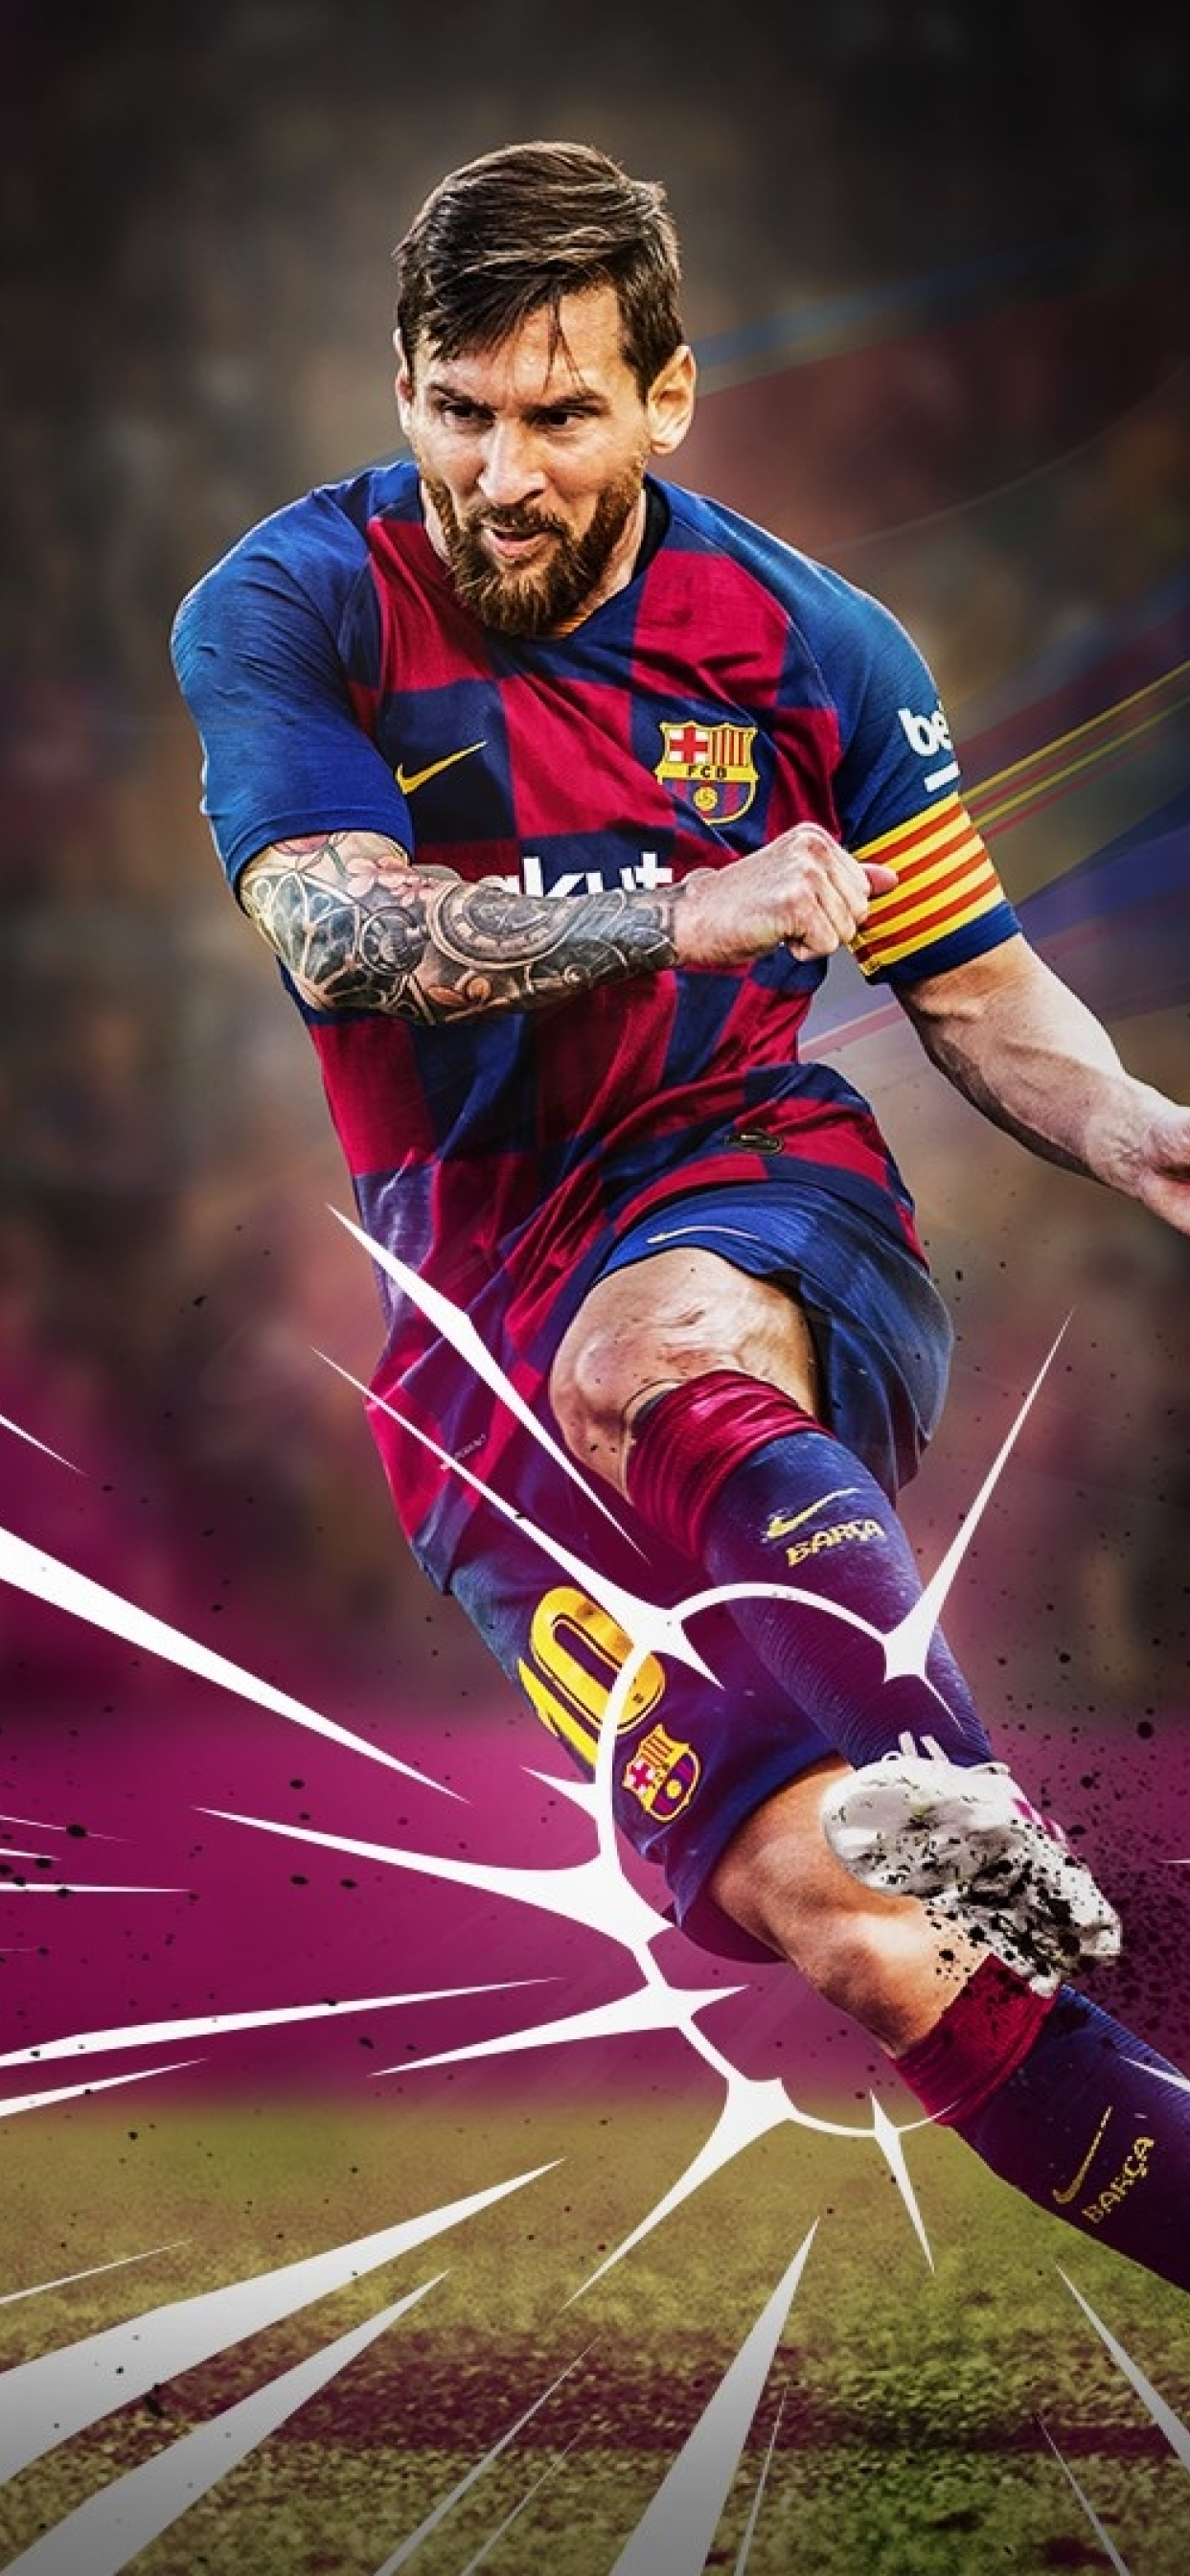 1242x2688 eFootball PES 2020 Iphone XS MAX Wallpaper HD Games 4K 1242x2688